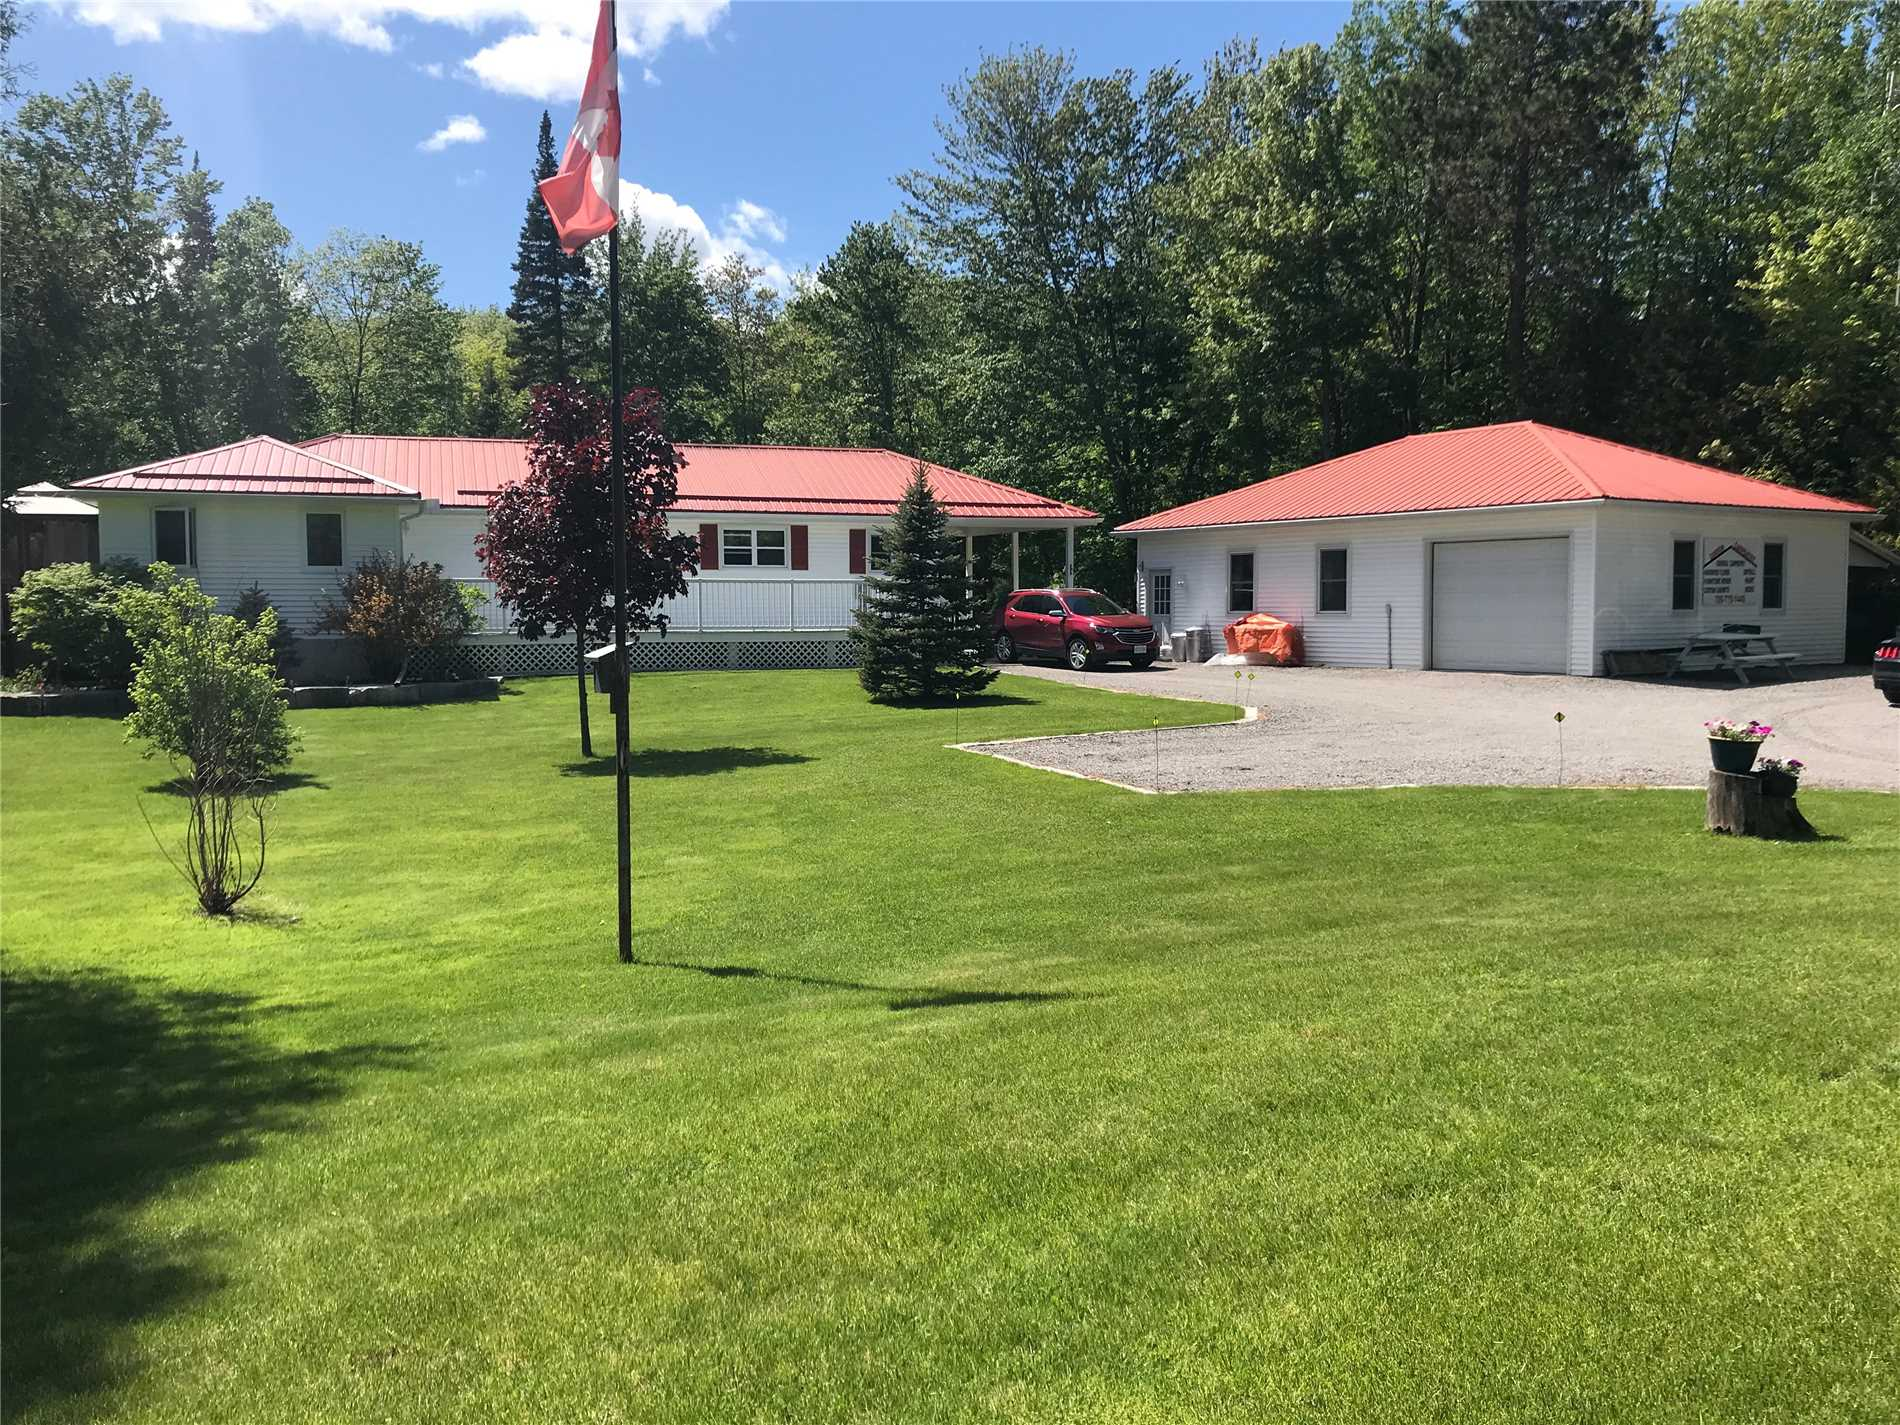 This Immaculate Bungalow Sits On A Very Private 3.15 Acre Lot Minutes From The Town Of Havelock Or Approx 30 Minutes To Peterborough. Open Concept Living Space With Large Country Kitchen. Master Bedroom On Main Floor And A Room With A Home Based Business Could Easily Be Converted To A Bedroom. Plus 2 Bedrooms & Bath On The Lower Level. Pride Of Ownership Everywhere You Look! A Gorgeous Pond Surrounded By Trees Is Another Feature Of This Exceptional Property.